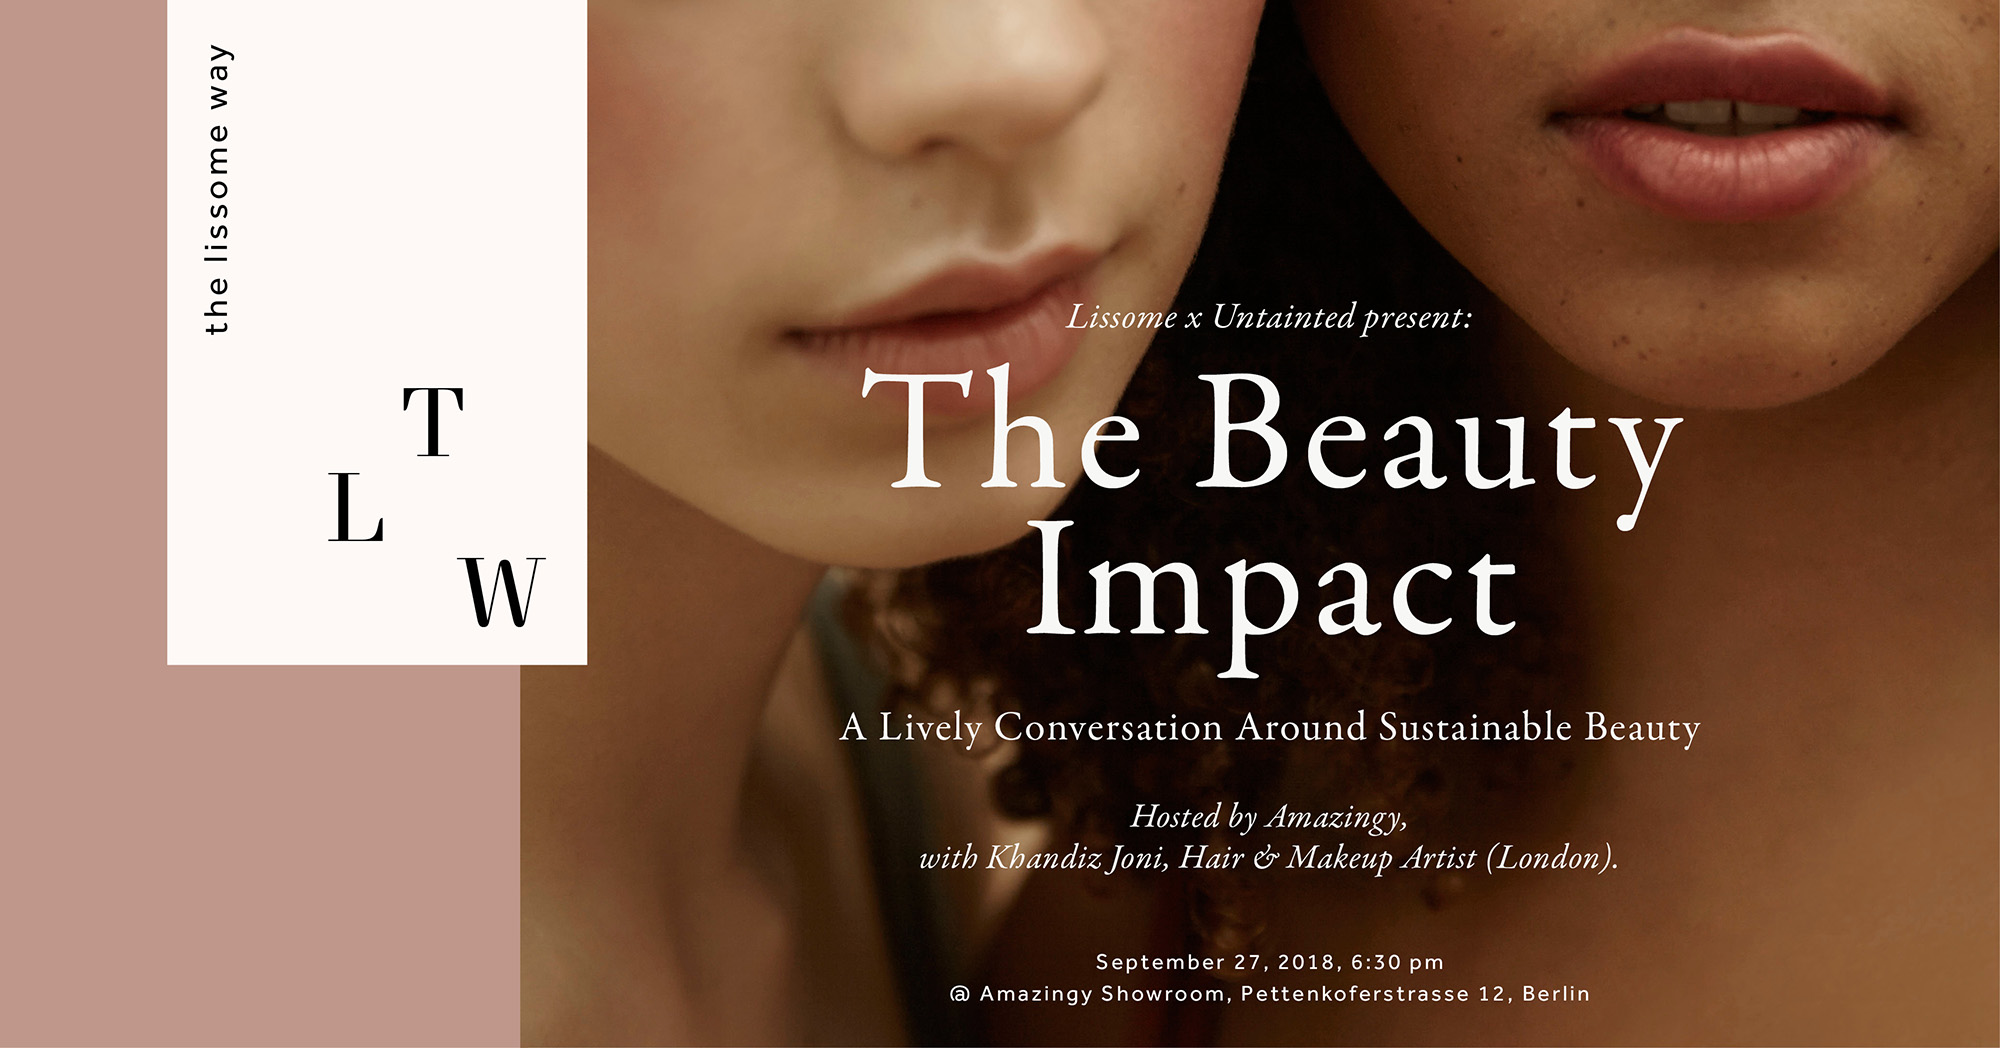 Sustainable Beauty Event, 27th September, 6:30 pm, Amazingy Store, Berlin